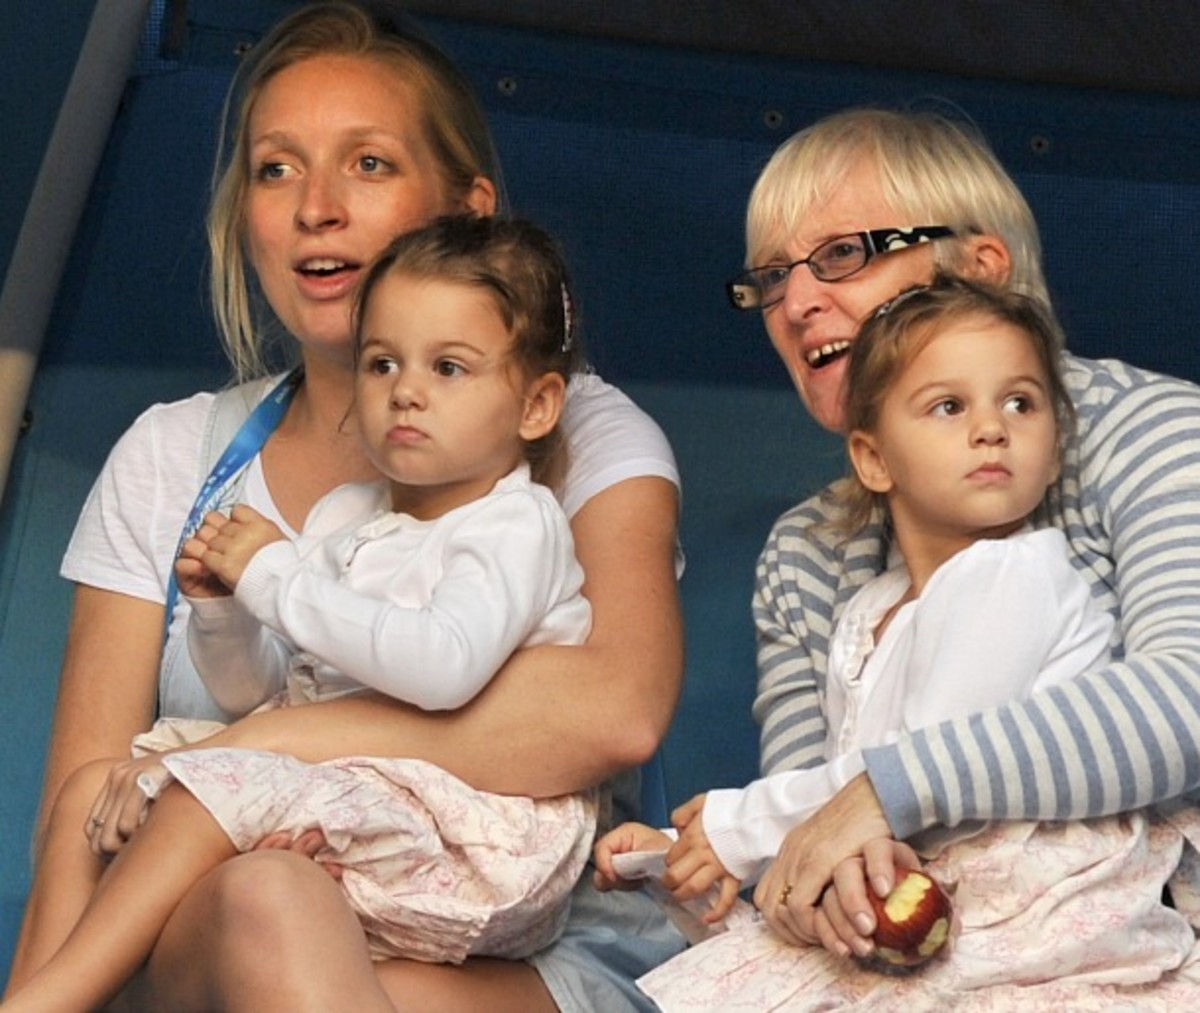 Charlene and Myla Rose at the 2012 Australian Open (AFP/Getty Images)